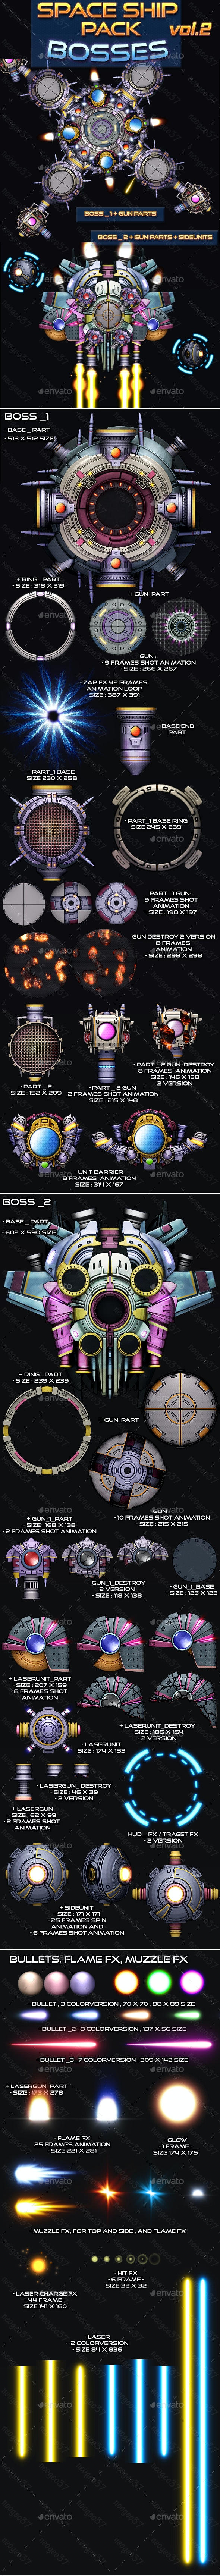 Space Ship Pack Bosses Vol 2 - Sprites Game Assets